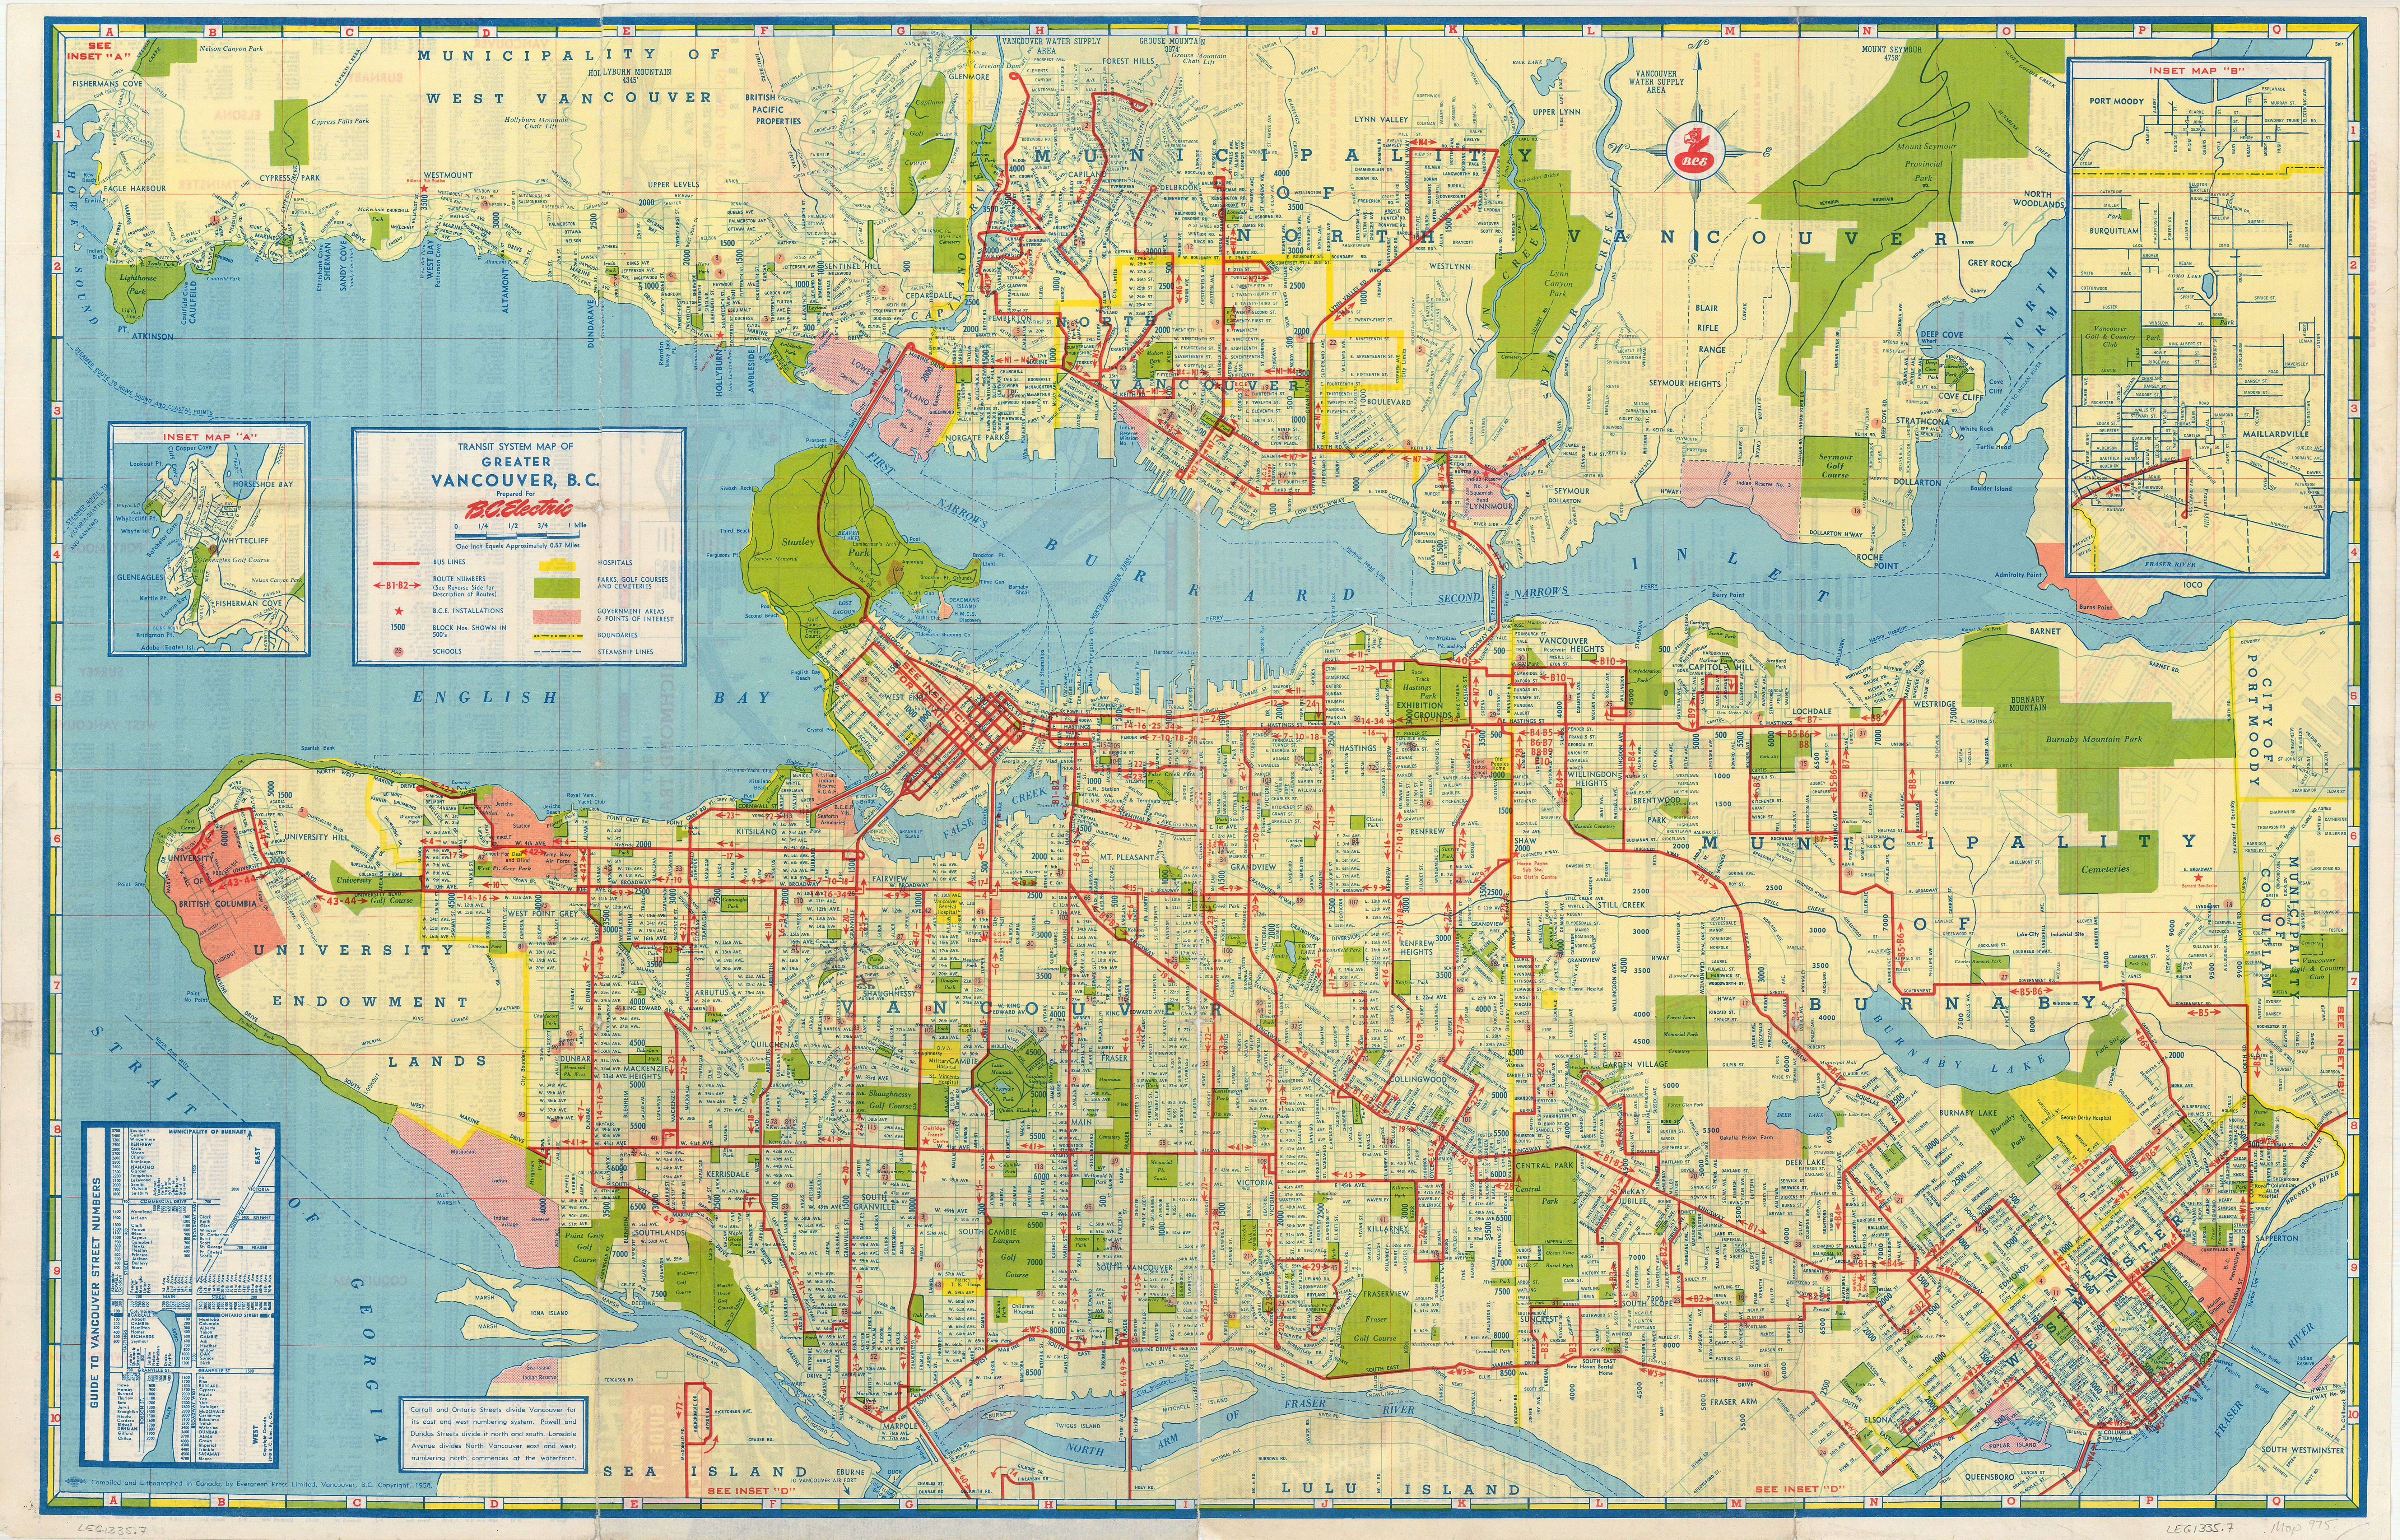 City of Vancouver Archives